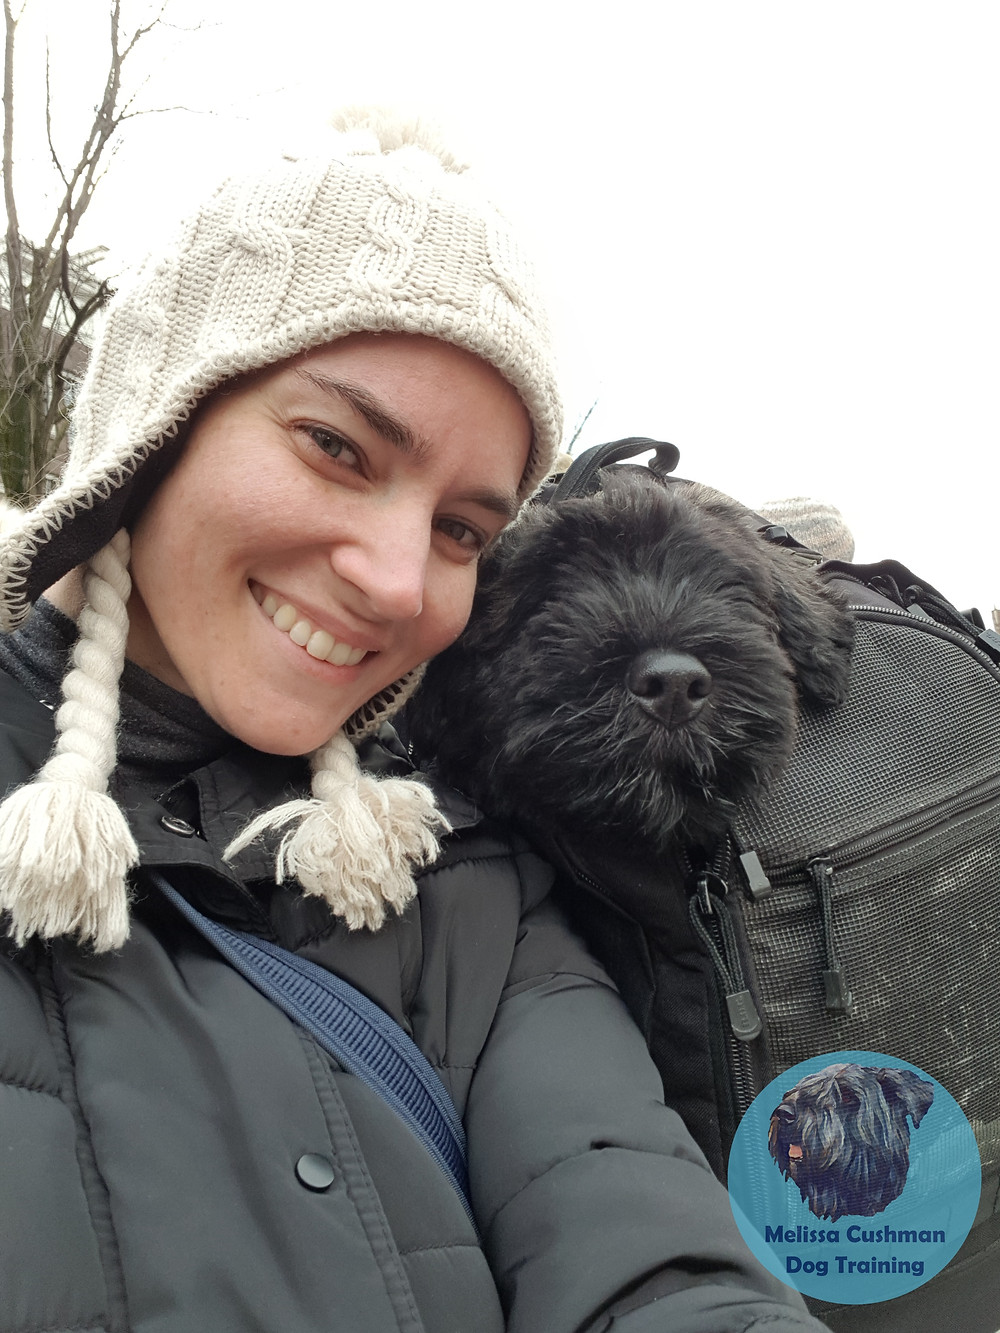 Melissa Cushman and Gunther a Bouvier des Flandres puppy are cuddled together Gunther is riding in a backpack.